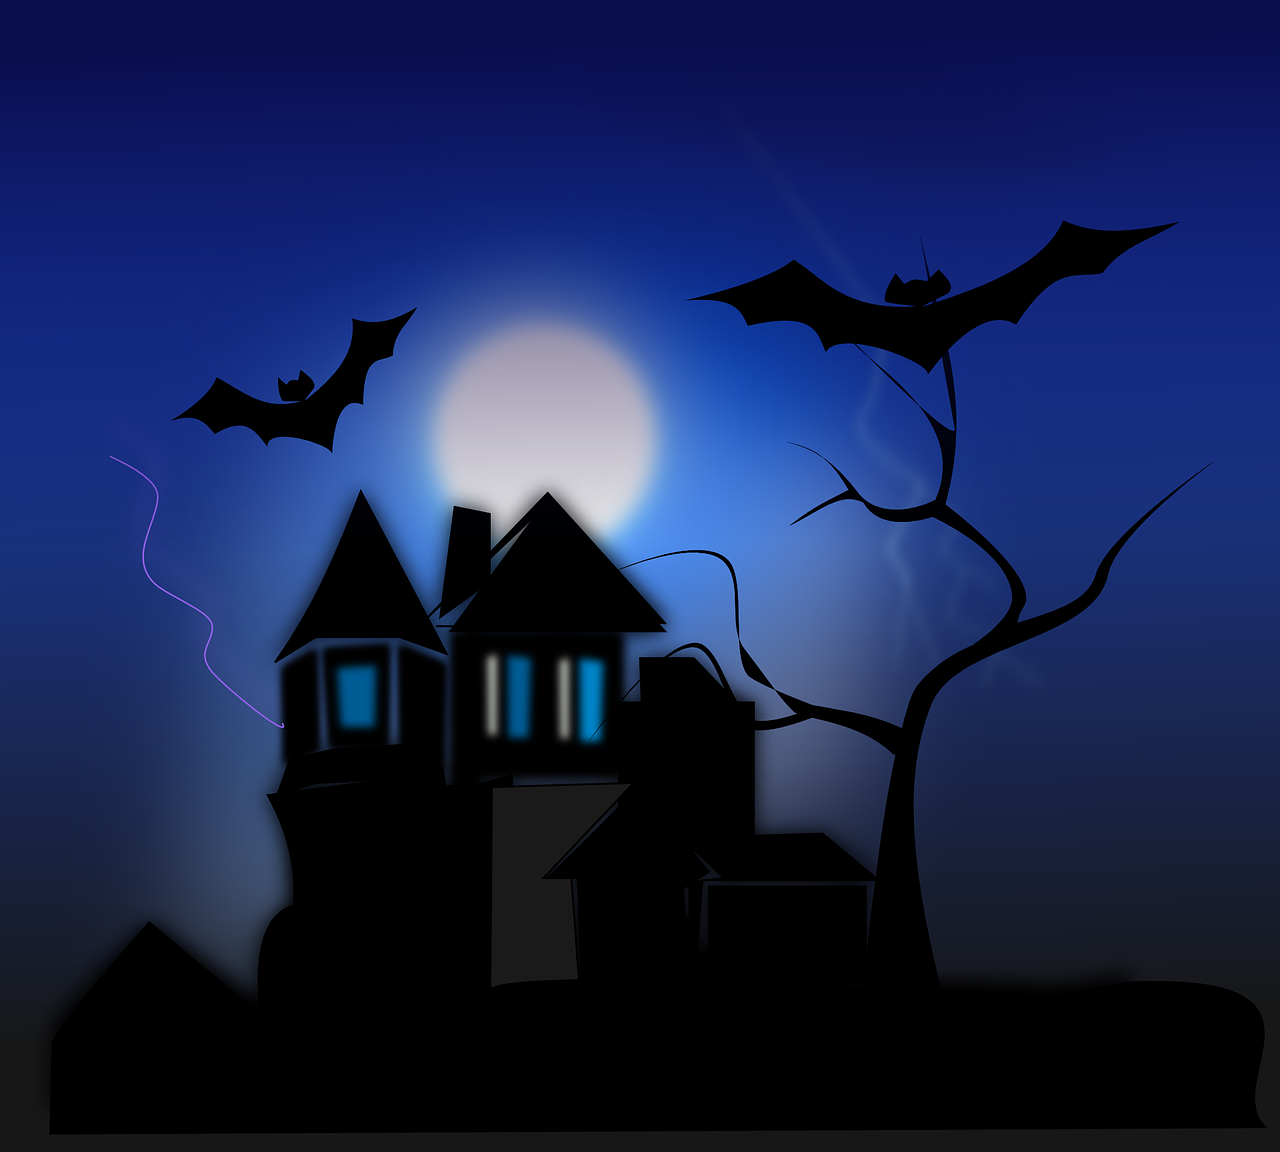 How to draw night, night landscape 13